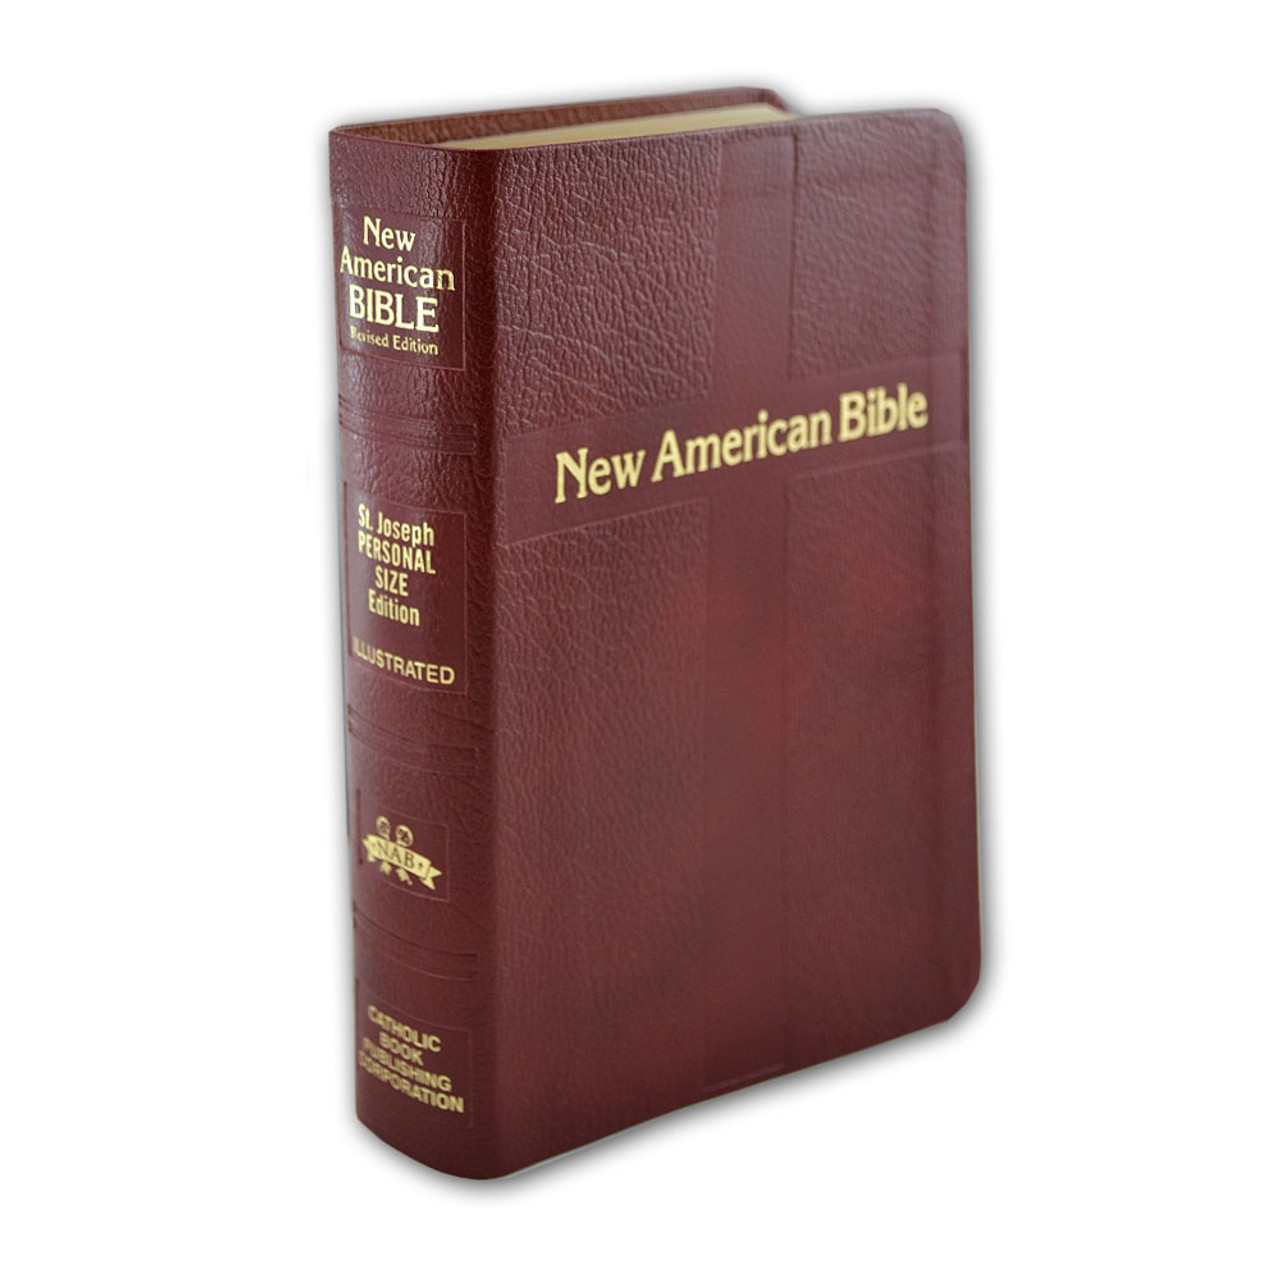 Personal Size Burgundy Bible Bonded Leather